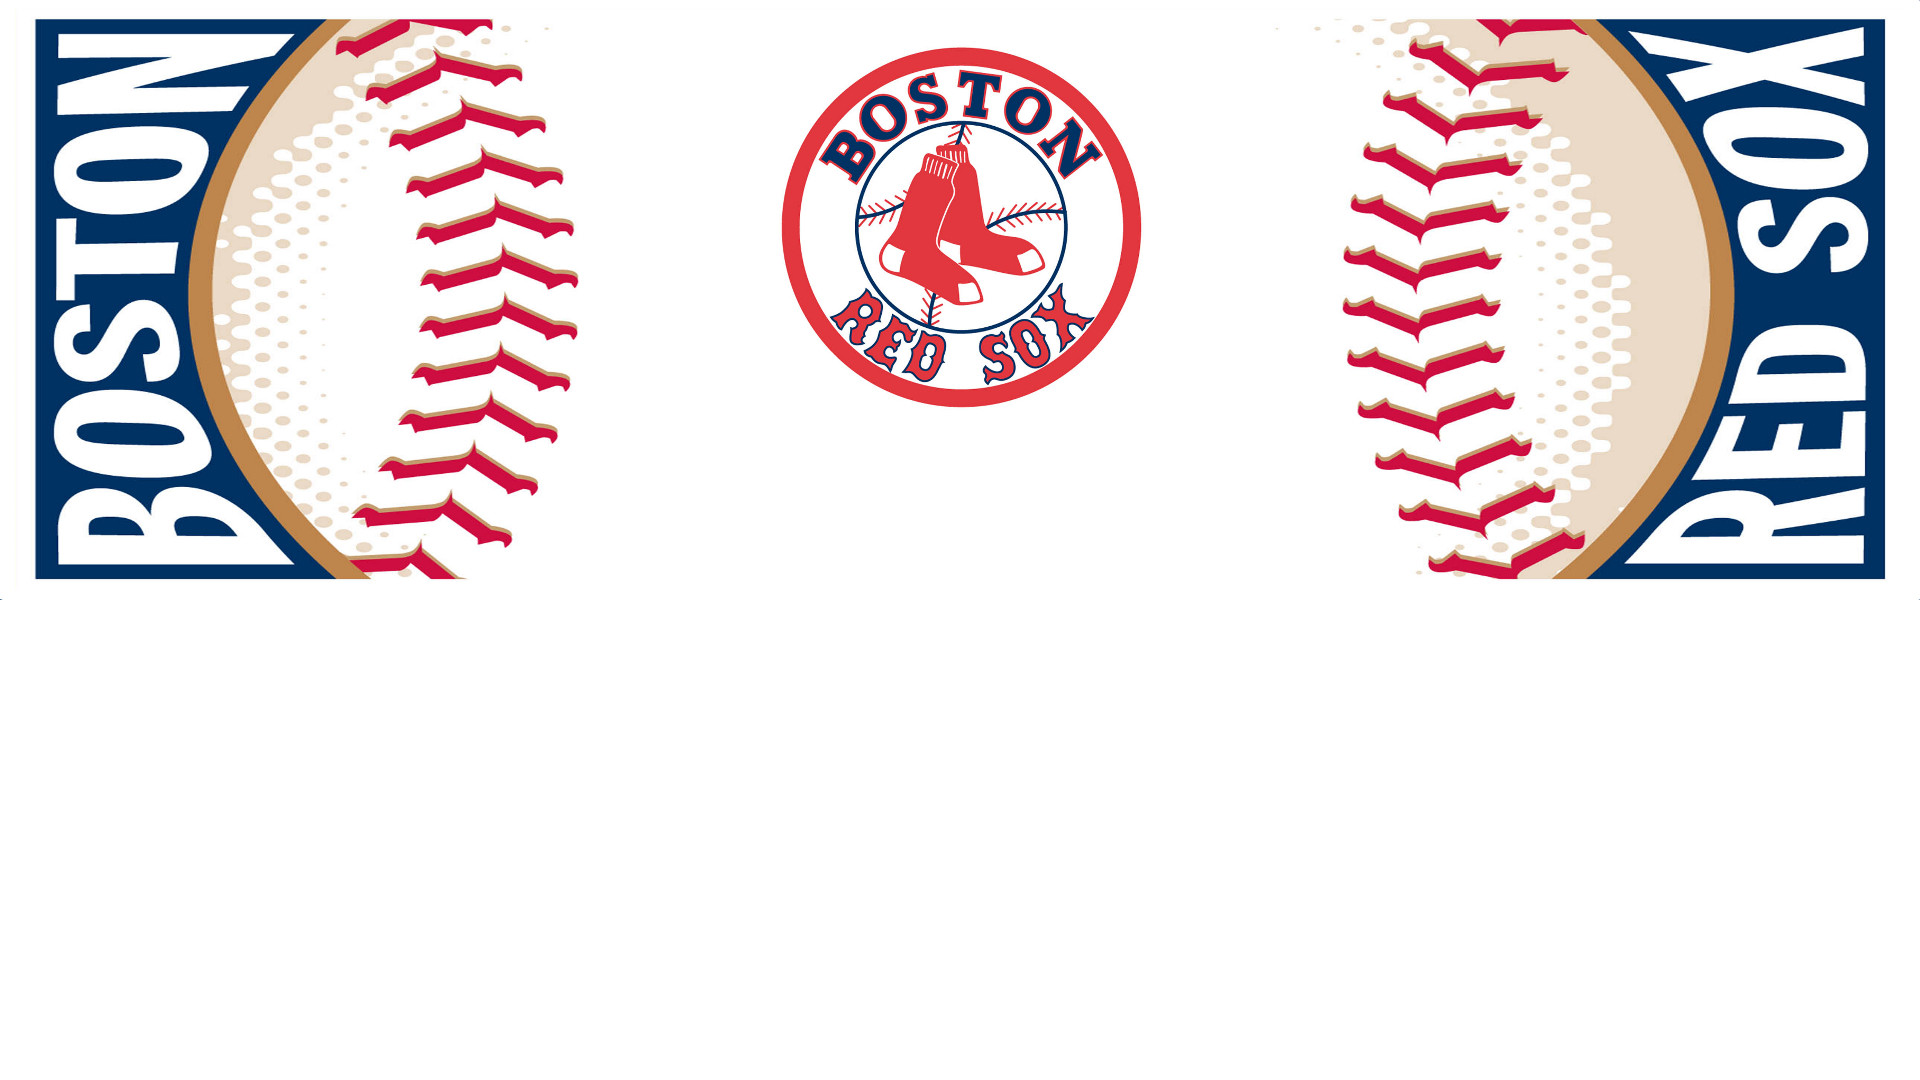 1920x1080 Boston Red Sox Logo Wallpaper 35437 HD Pictures | Top Wallpaper